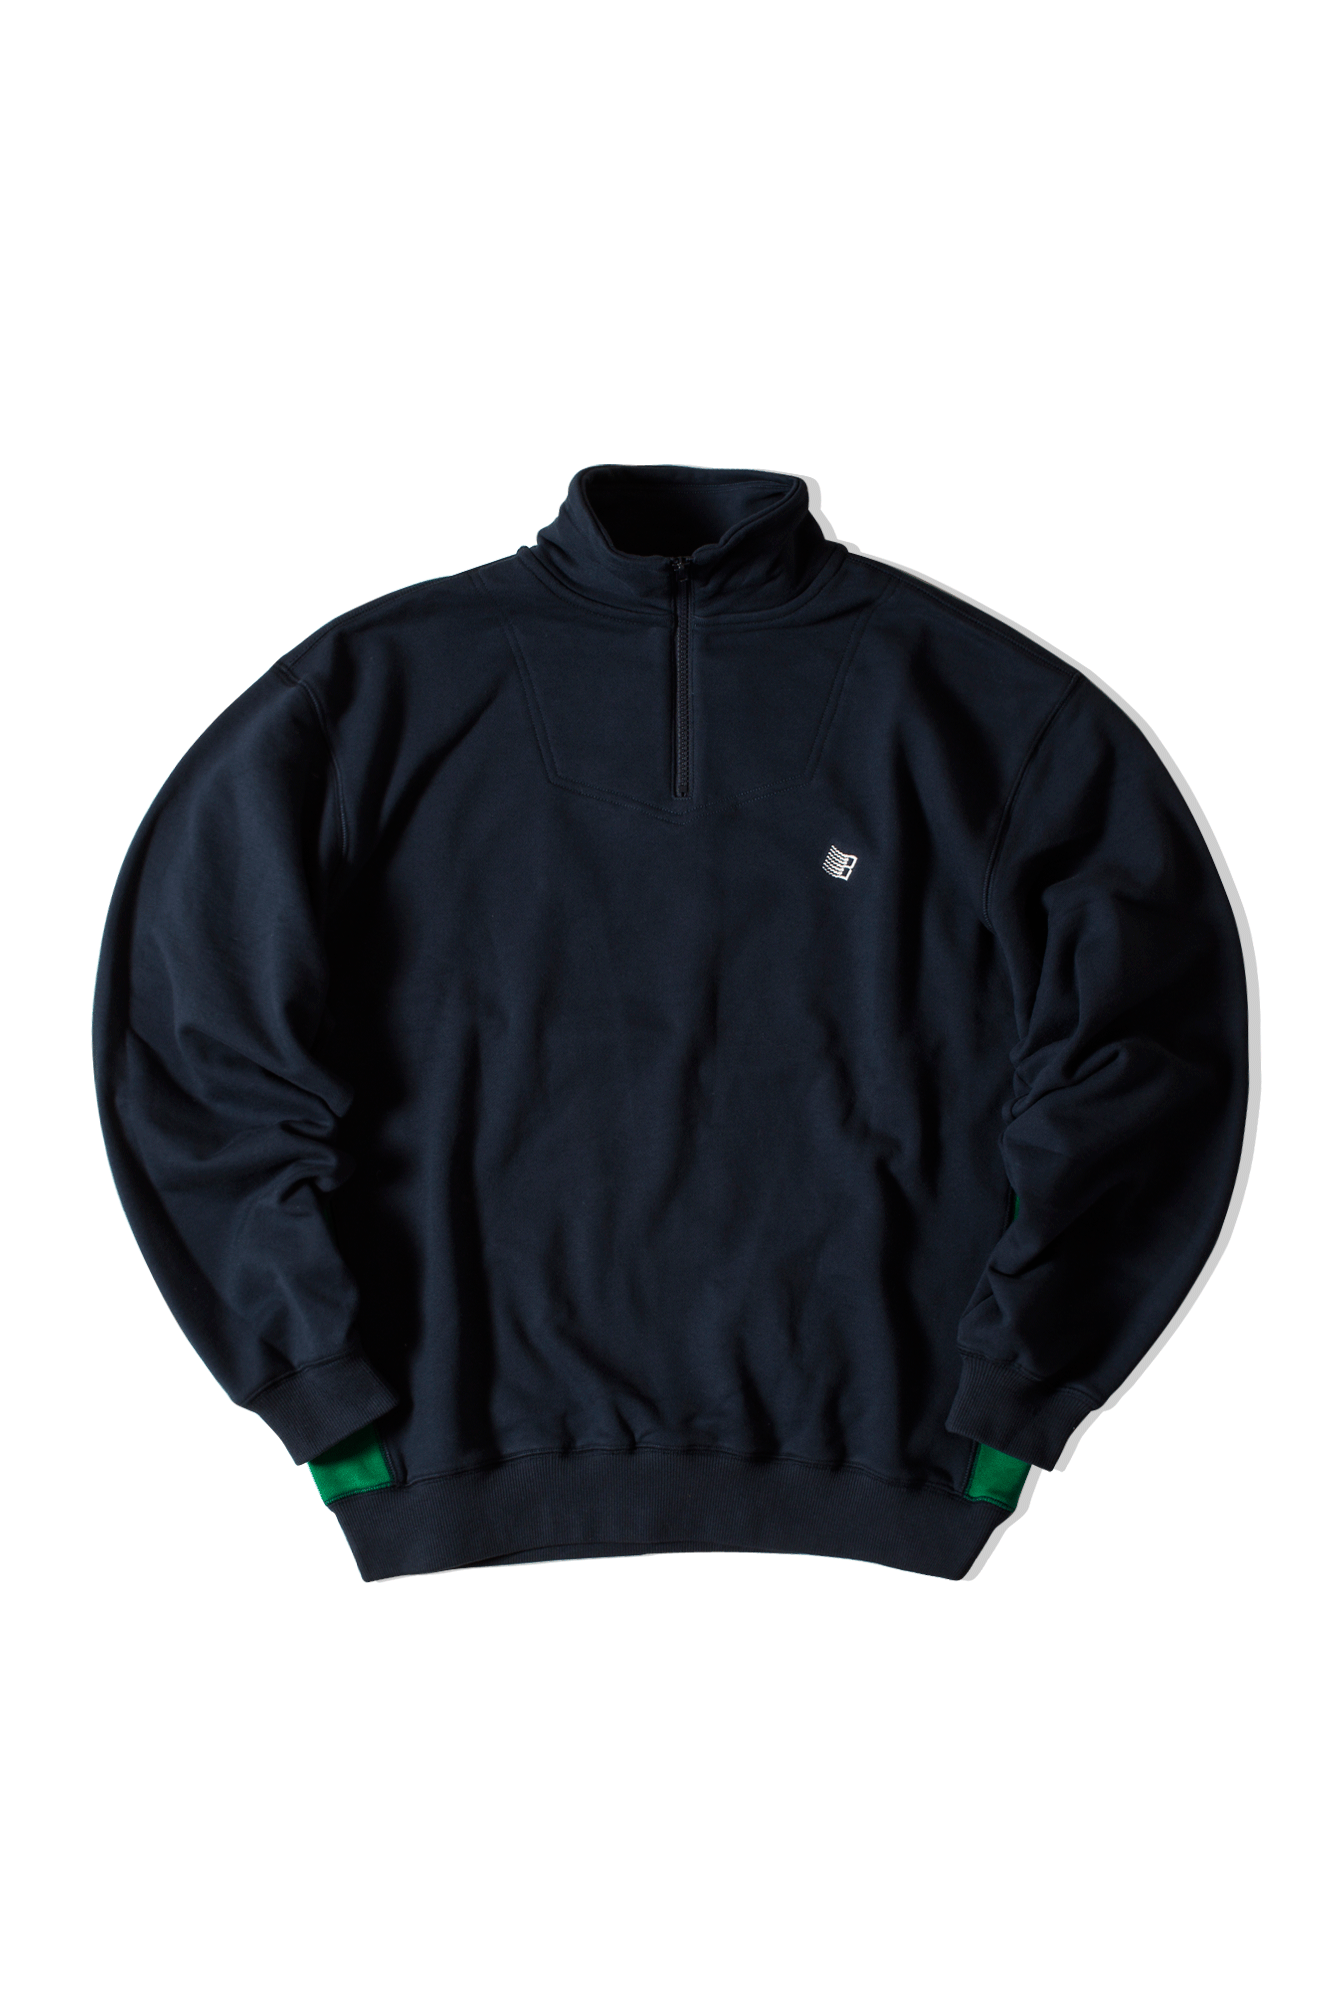 Quarter Zip-up sweatshirt Blue